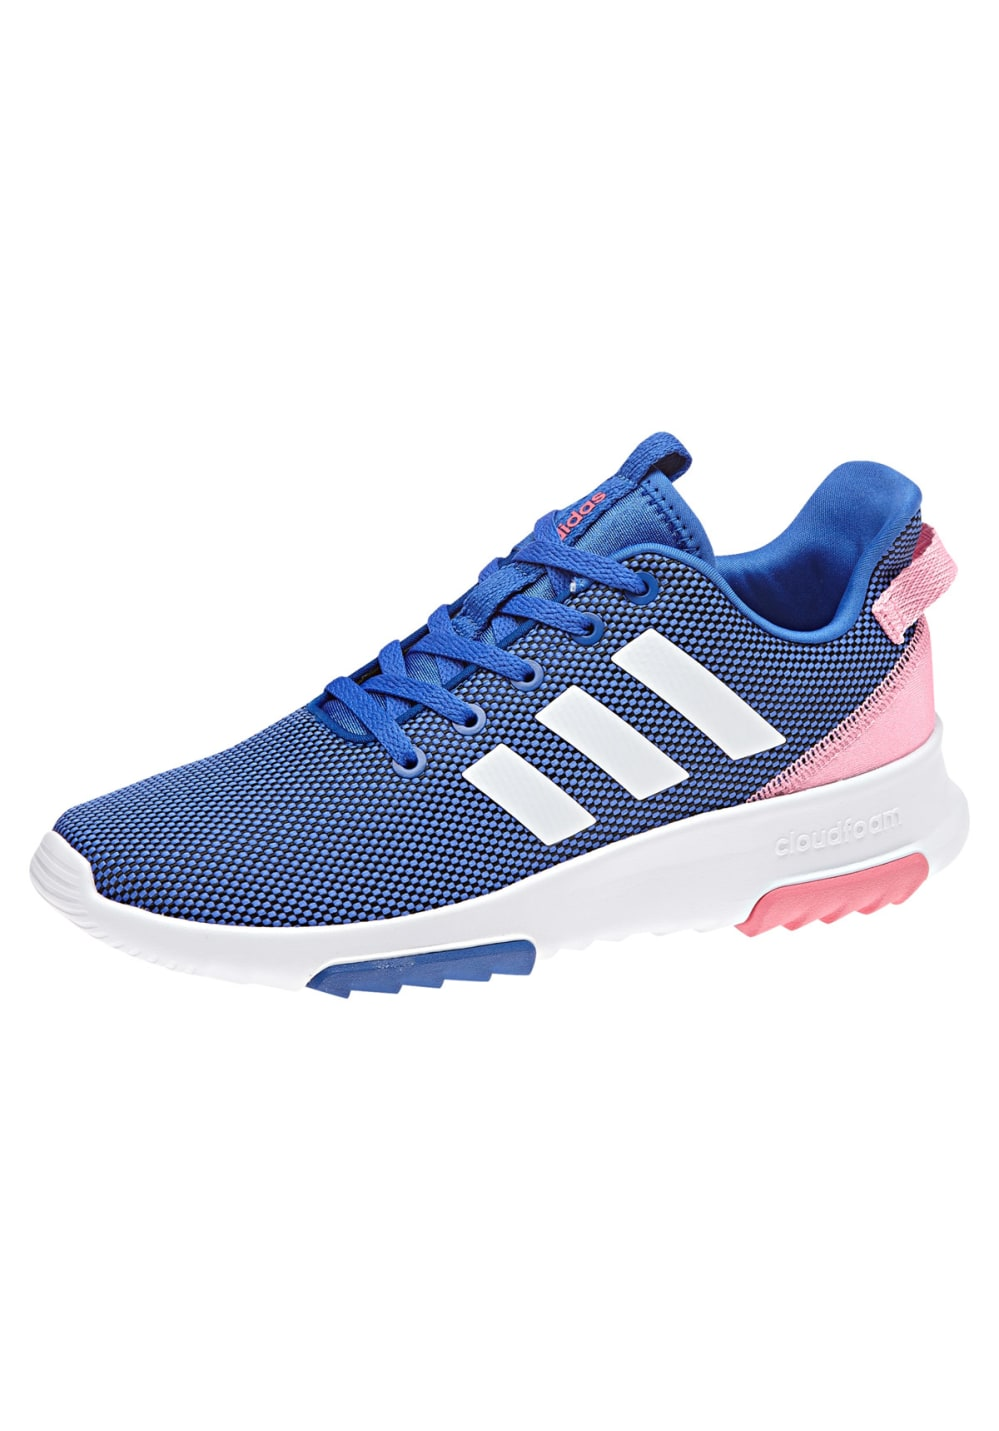 reputable site 0afd8 5caba adidas neo Cf Racer Tr K - Running shoes - Blue  21RUN